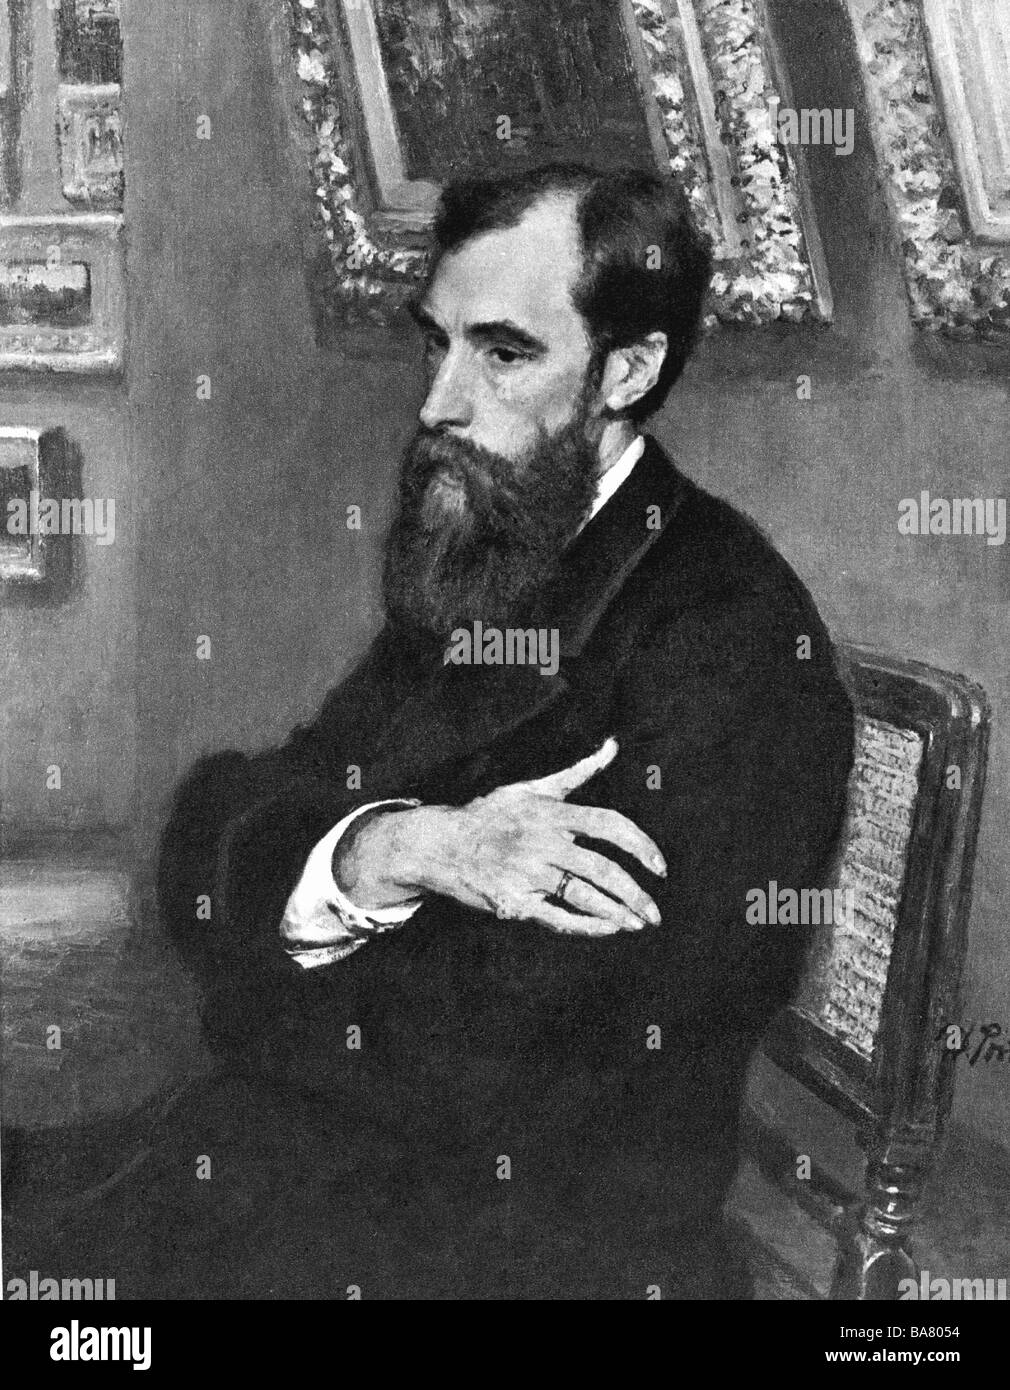 Tretyakov, Pavel Mikhailovich, 27.12.1832 - 16.12.1898, Russian art collector, half length, print after painting - Stock Image